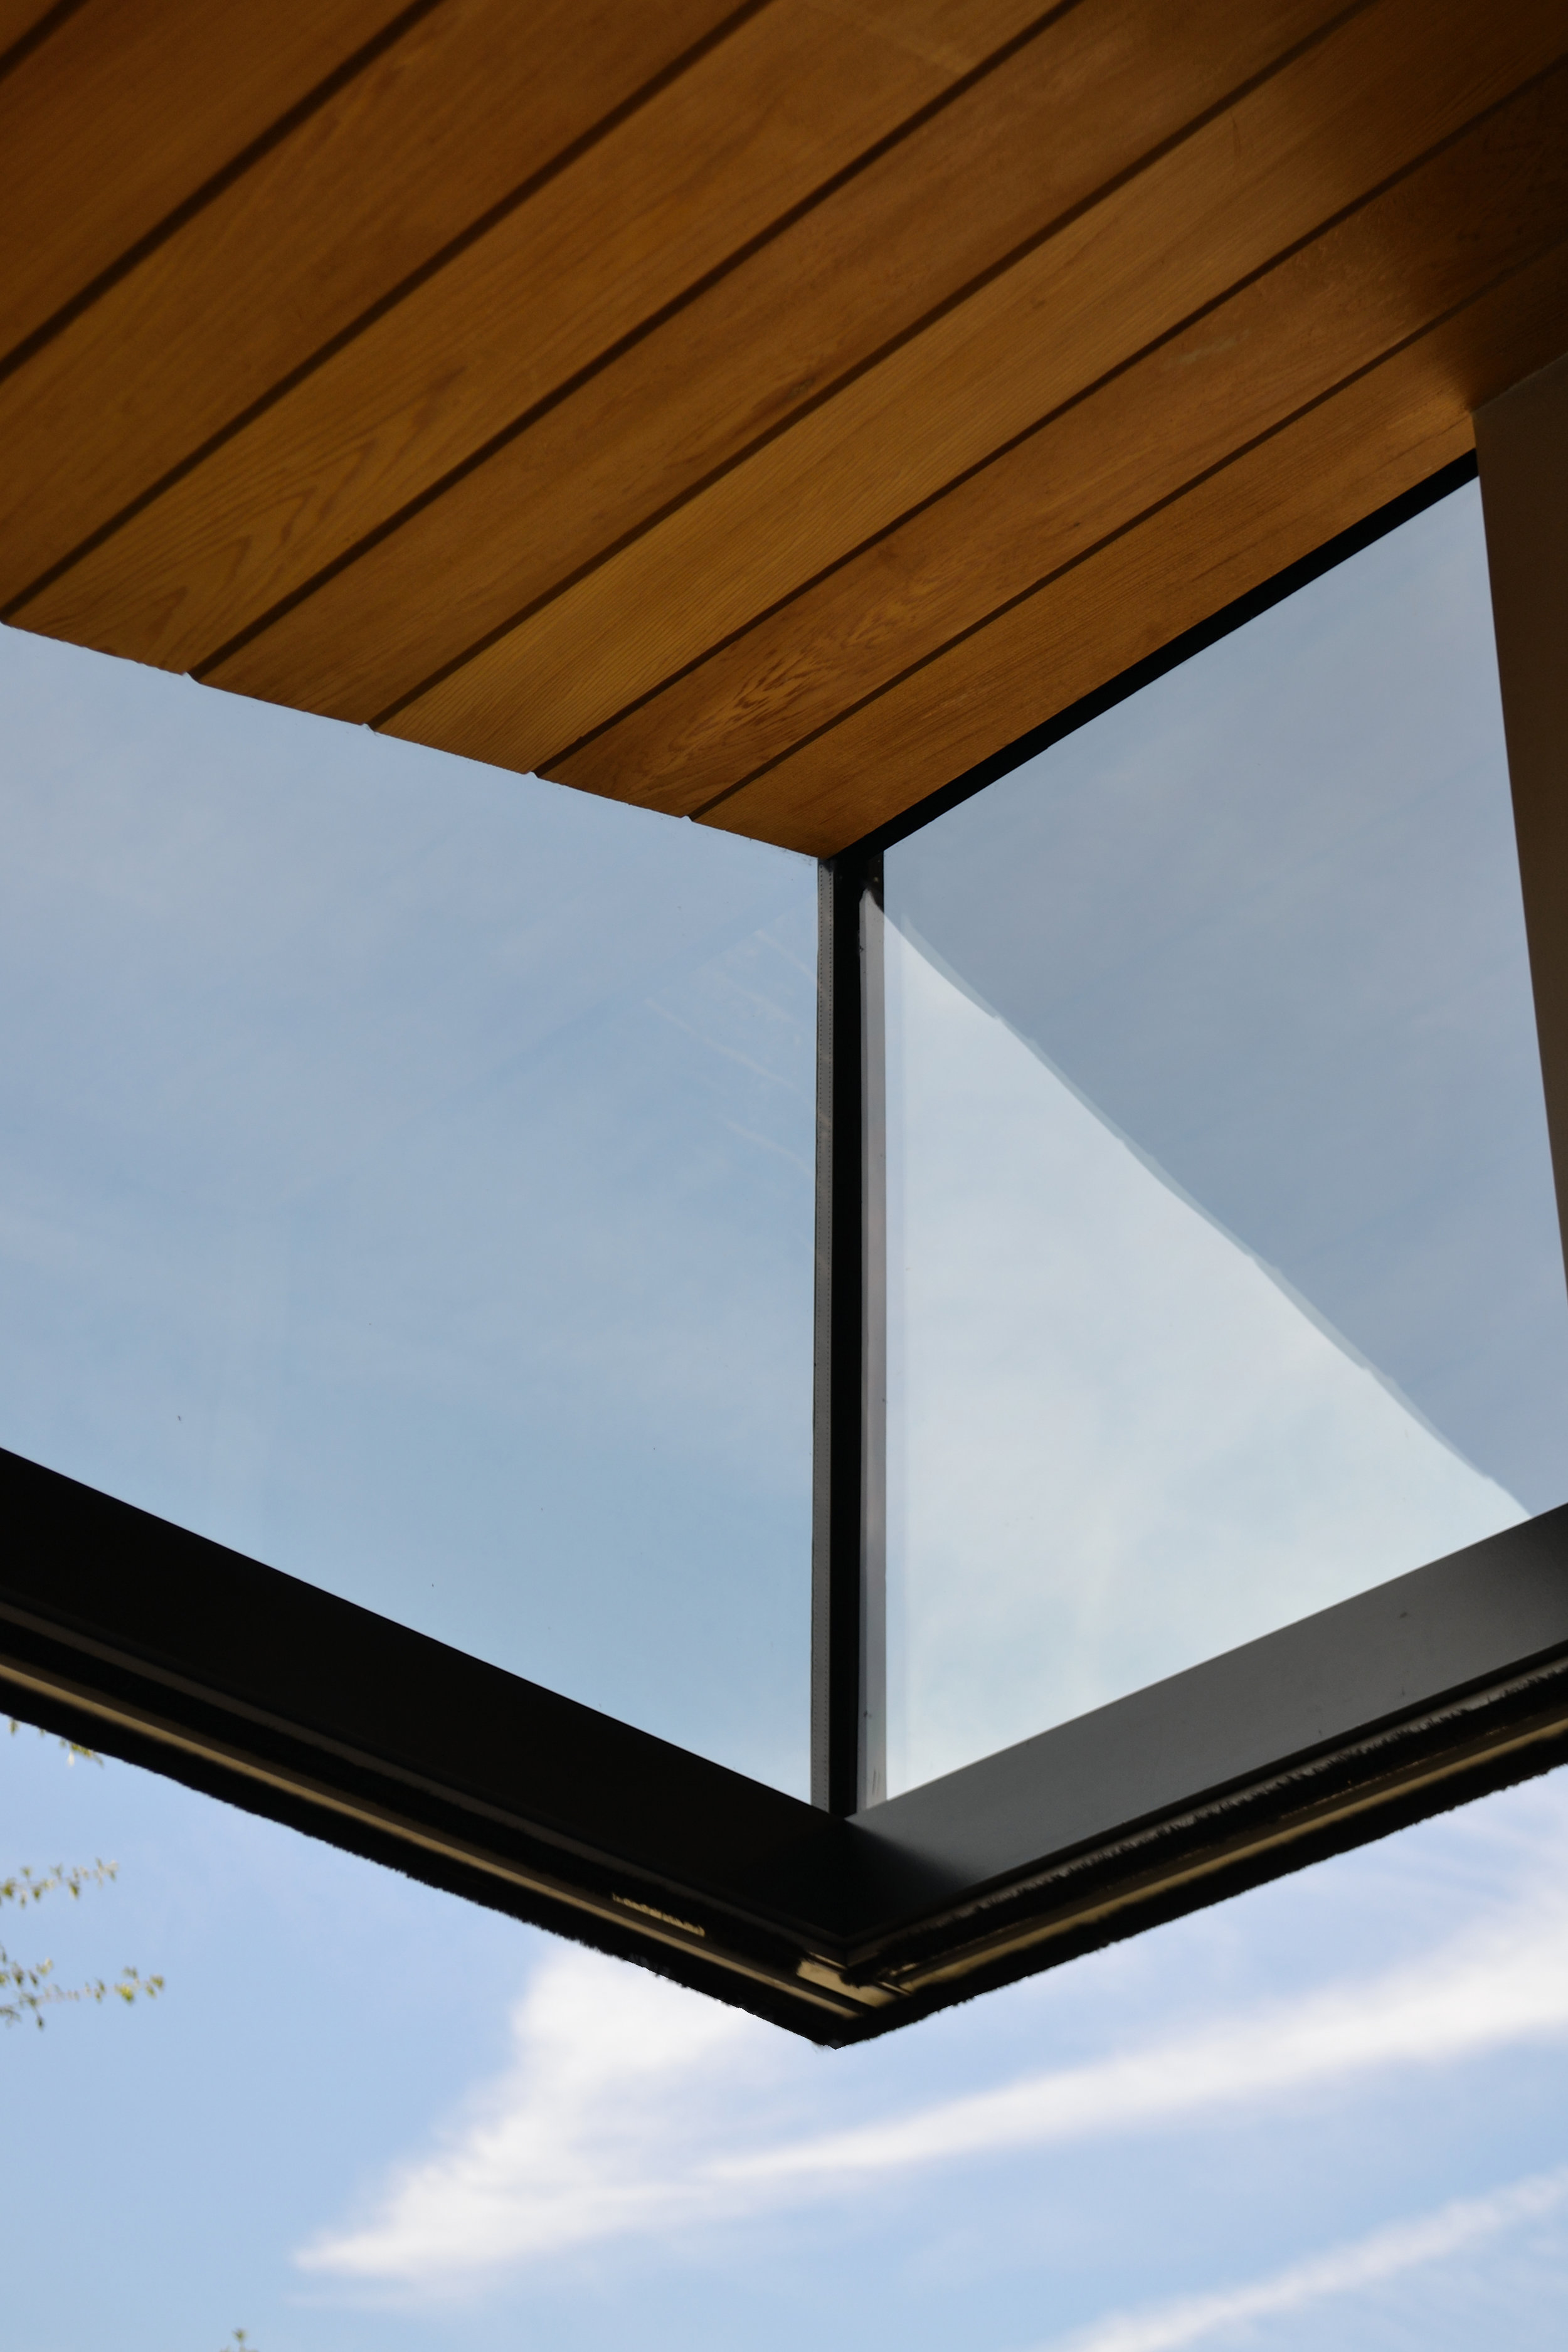 05-whatman-road-victorian-house-extension-architecture-structural-glazing-south-east-london-uk-rider-stirland-architects.jpg